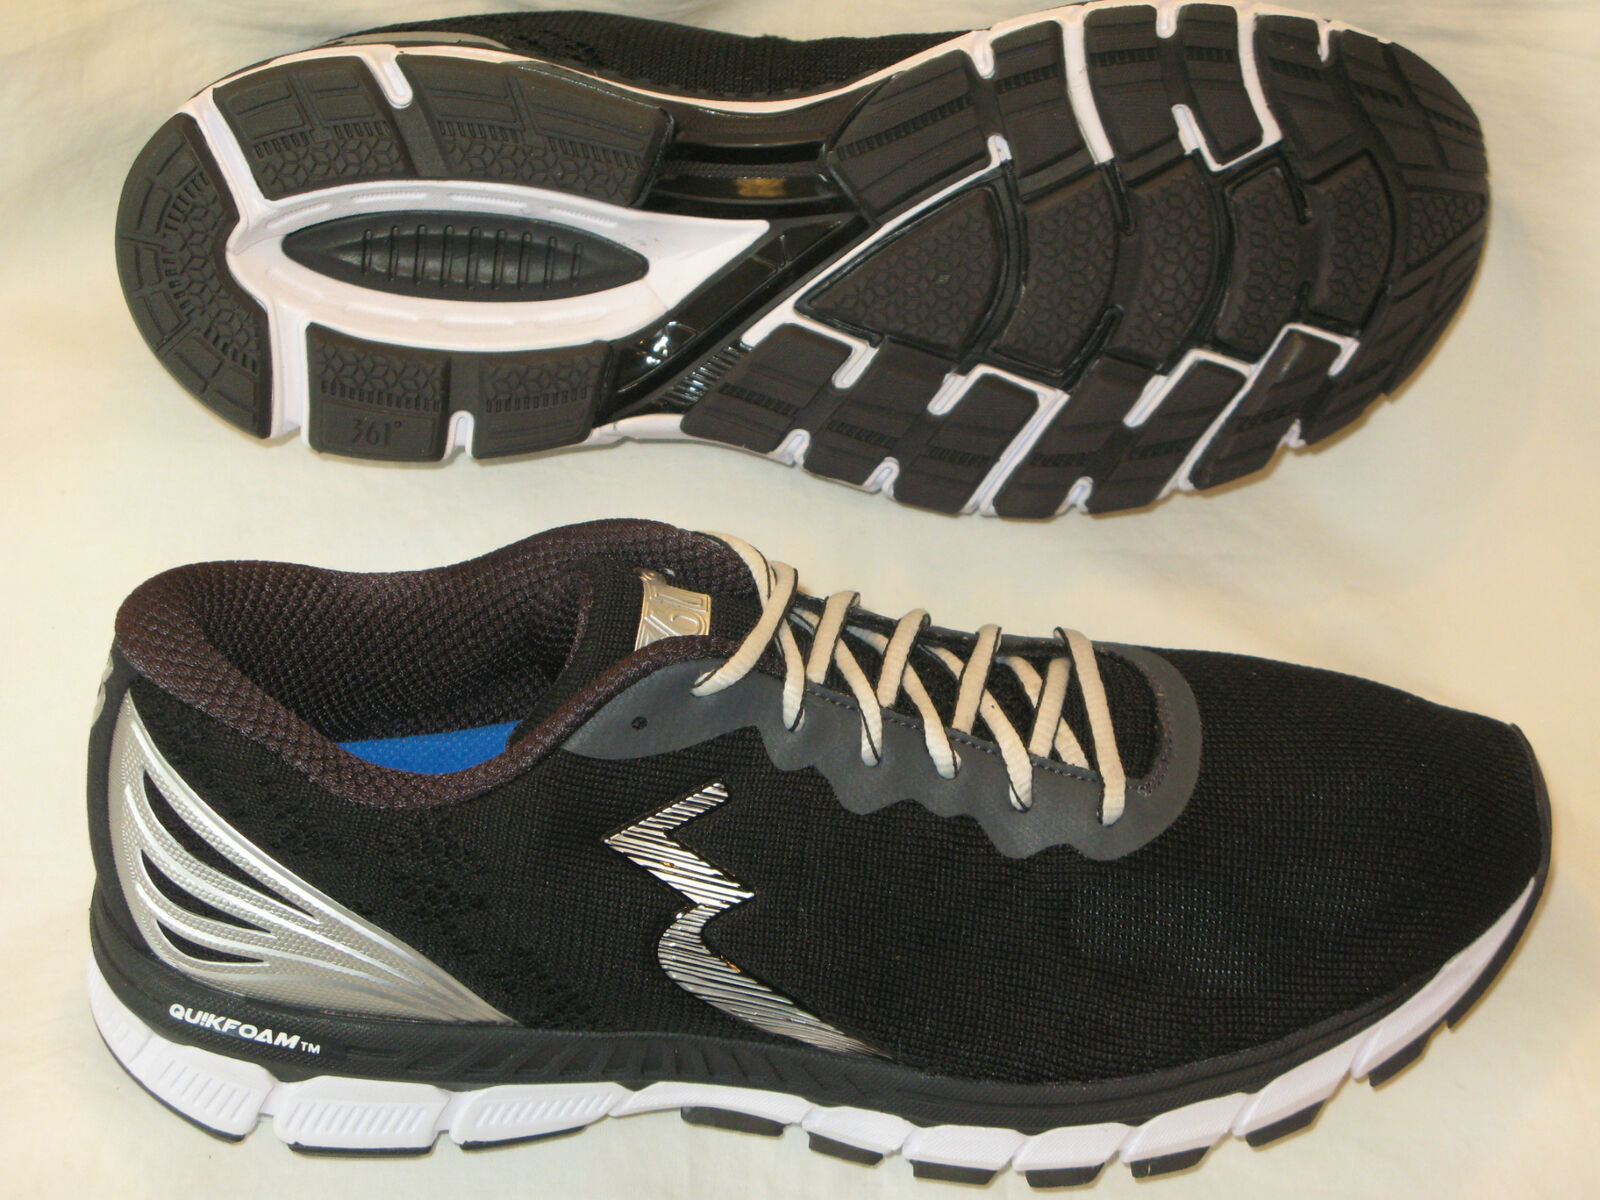 361 Degrees Mens Running shoes USA 10 Light Minimal Trainer BRAND NEW